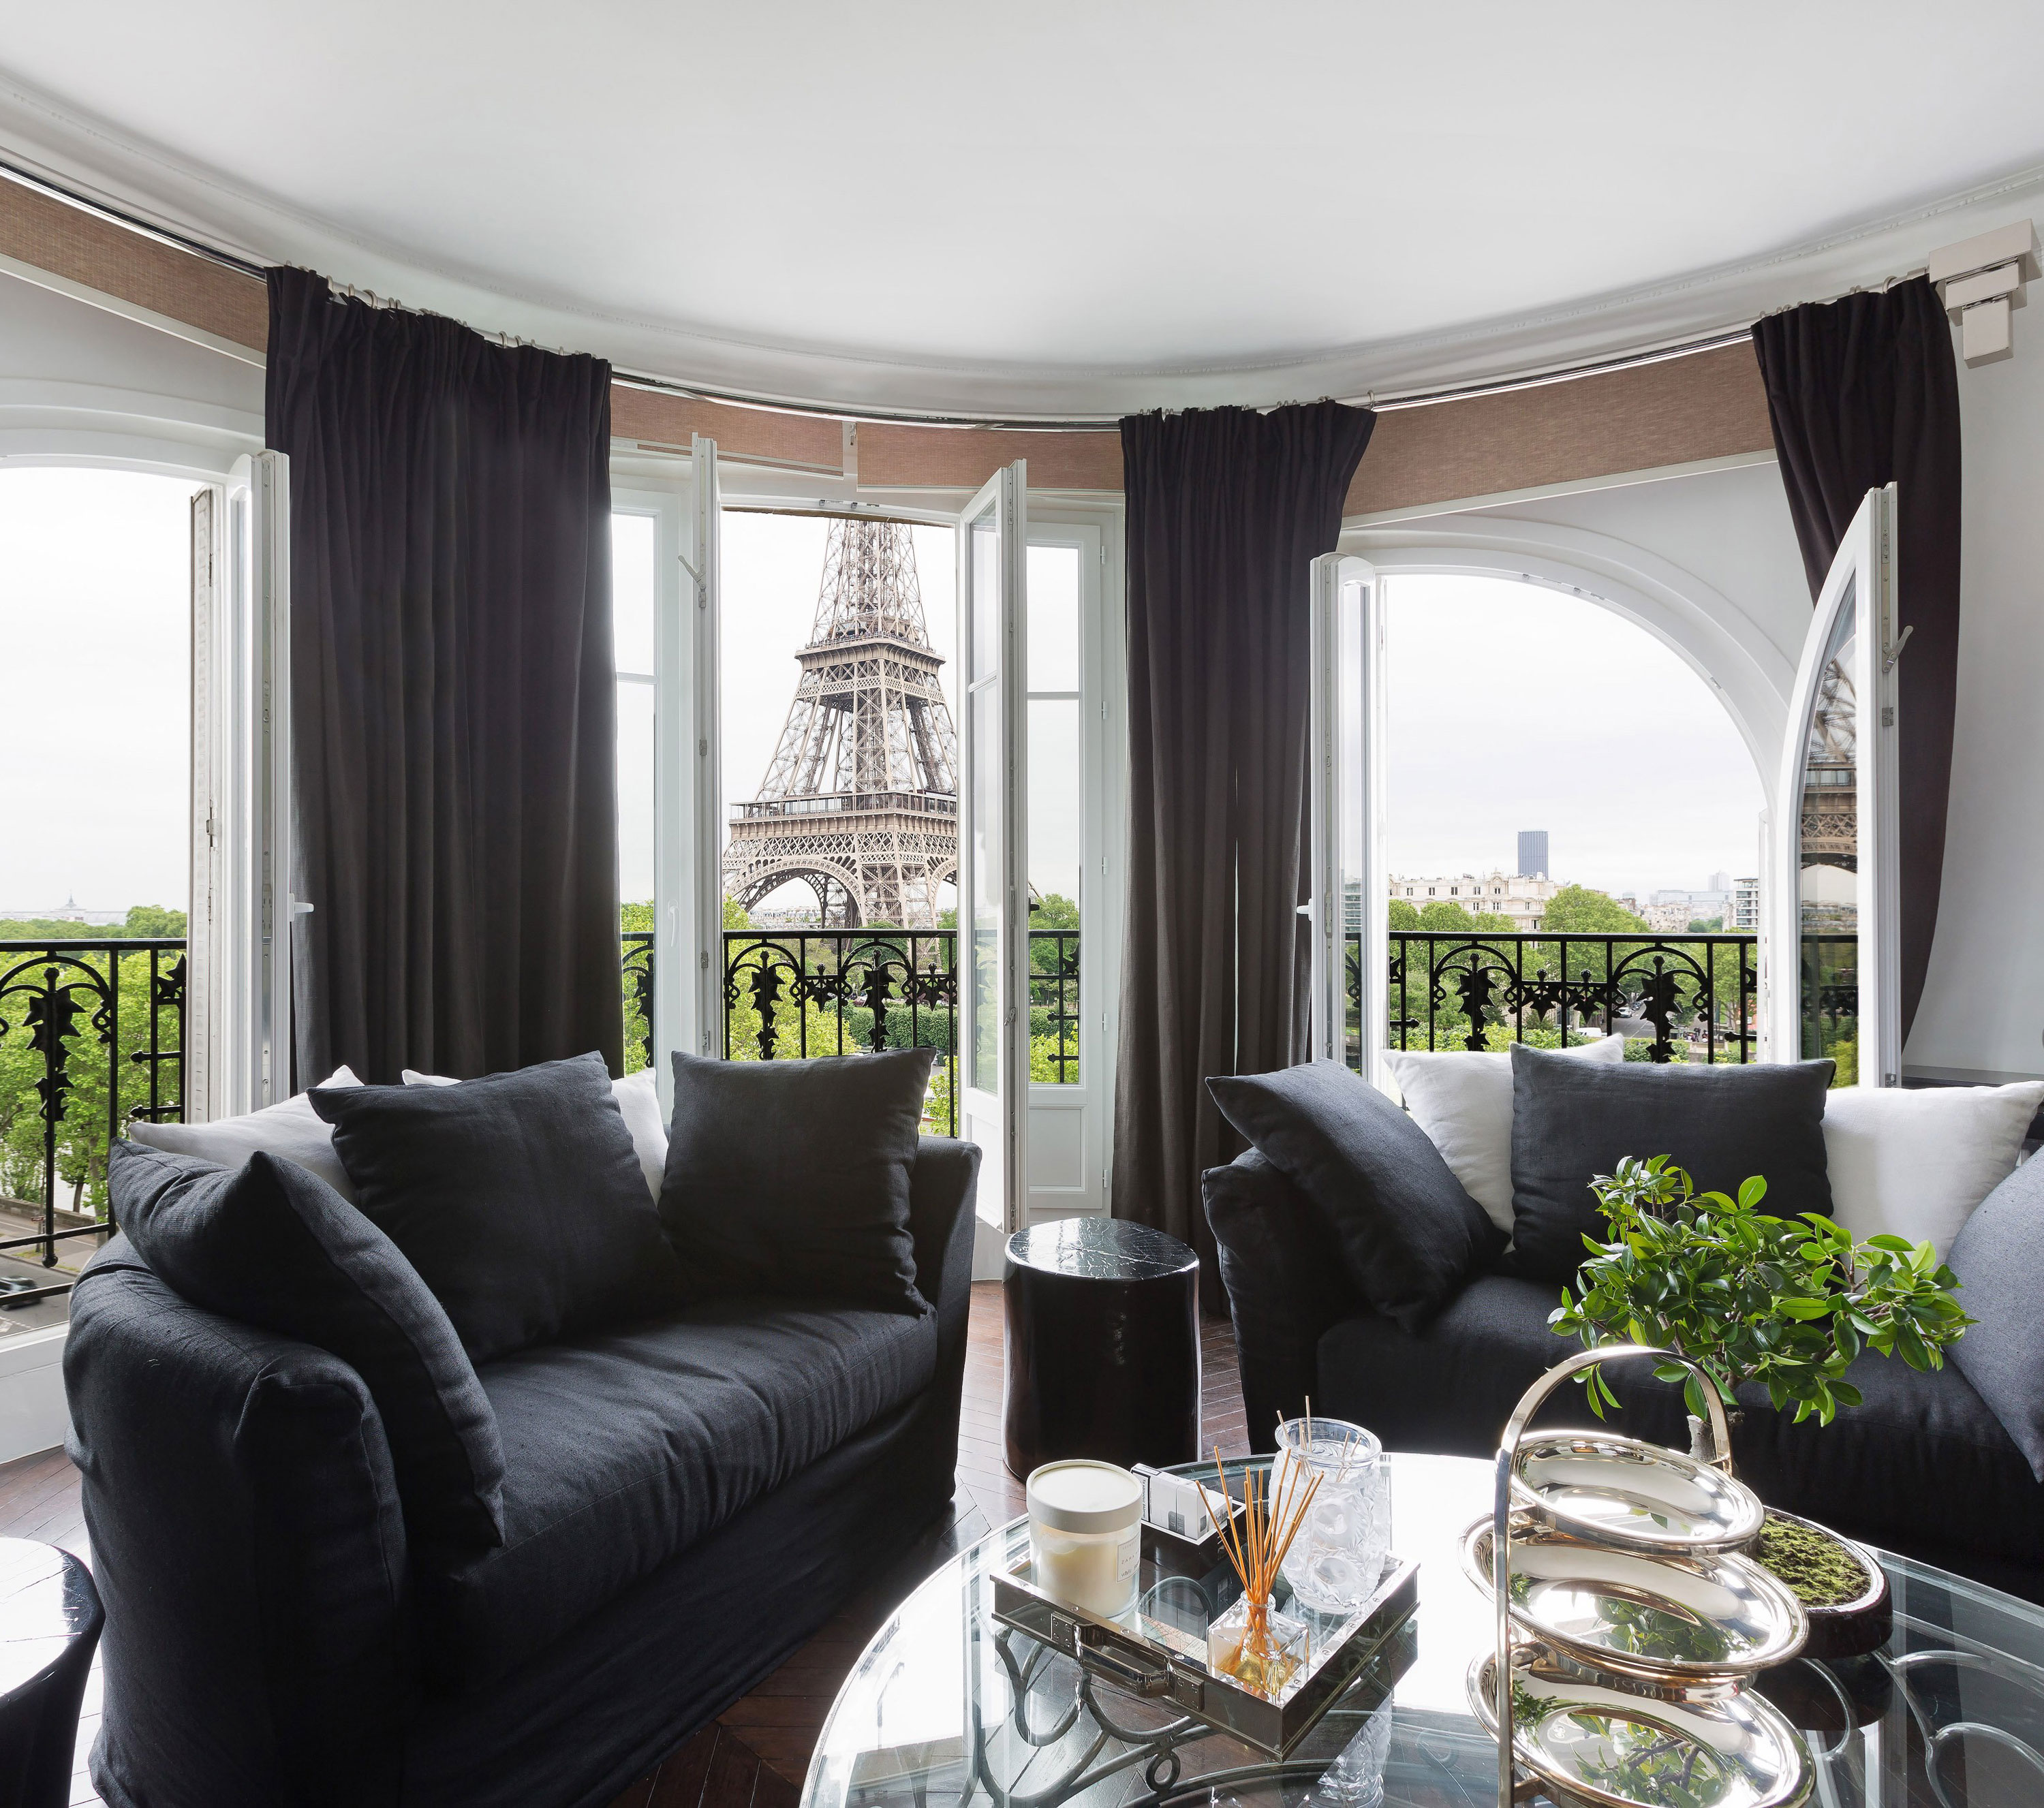 The views from this luxurious home seem to invite the Eiffel Tower into the living room. It is just a few minutes' walk to the famous monument and its ice rink.